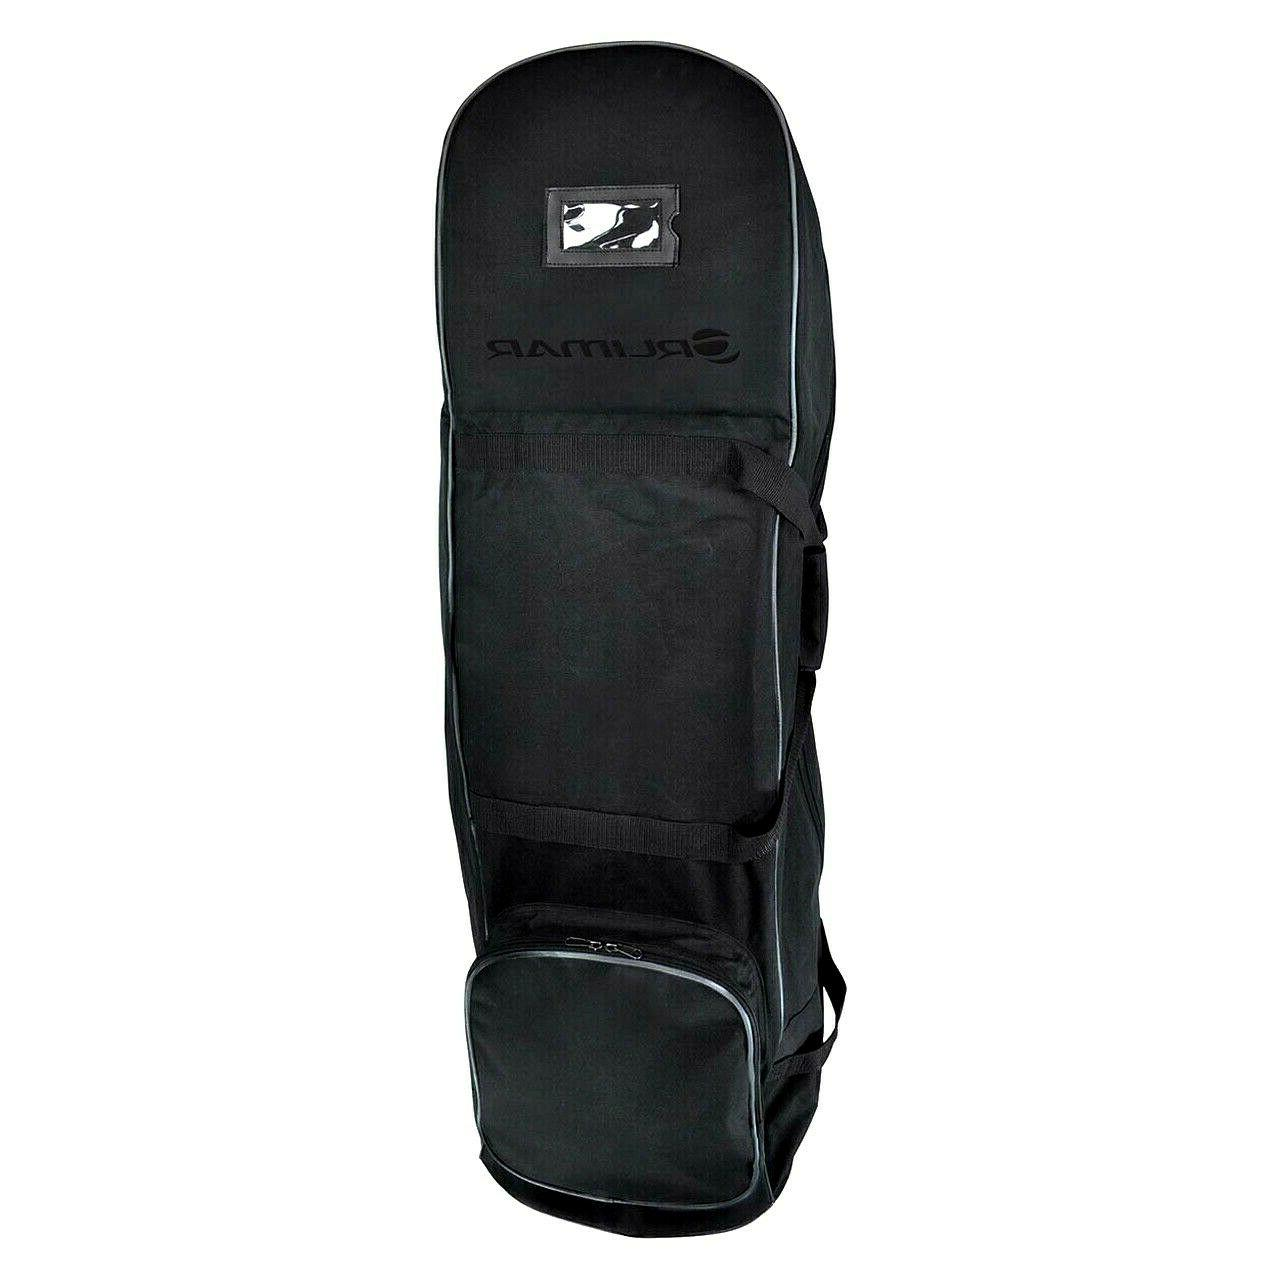 NEW Orlimar Golf 4.0 Wheeled Travel Bag Black